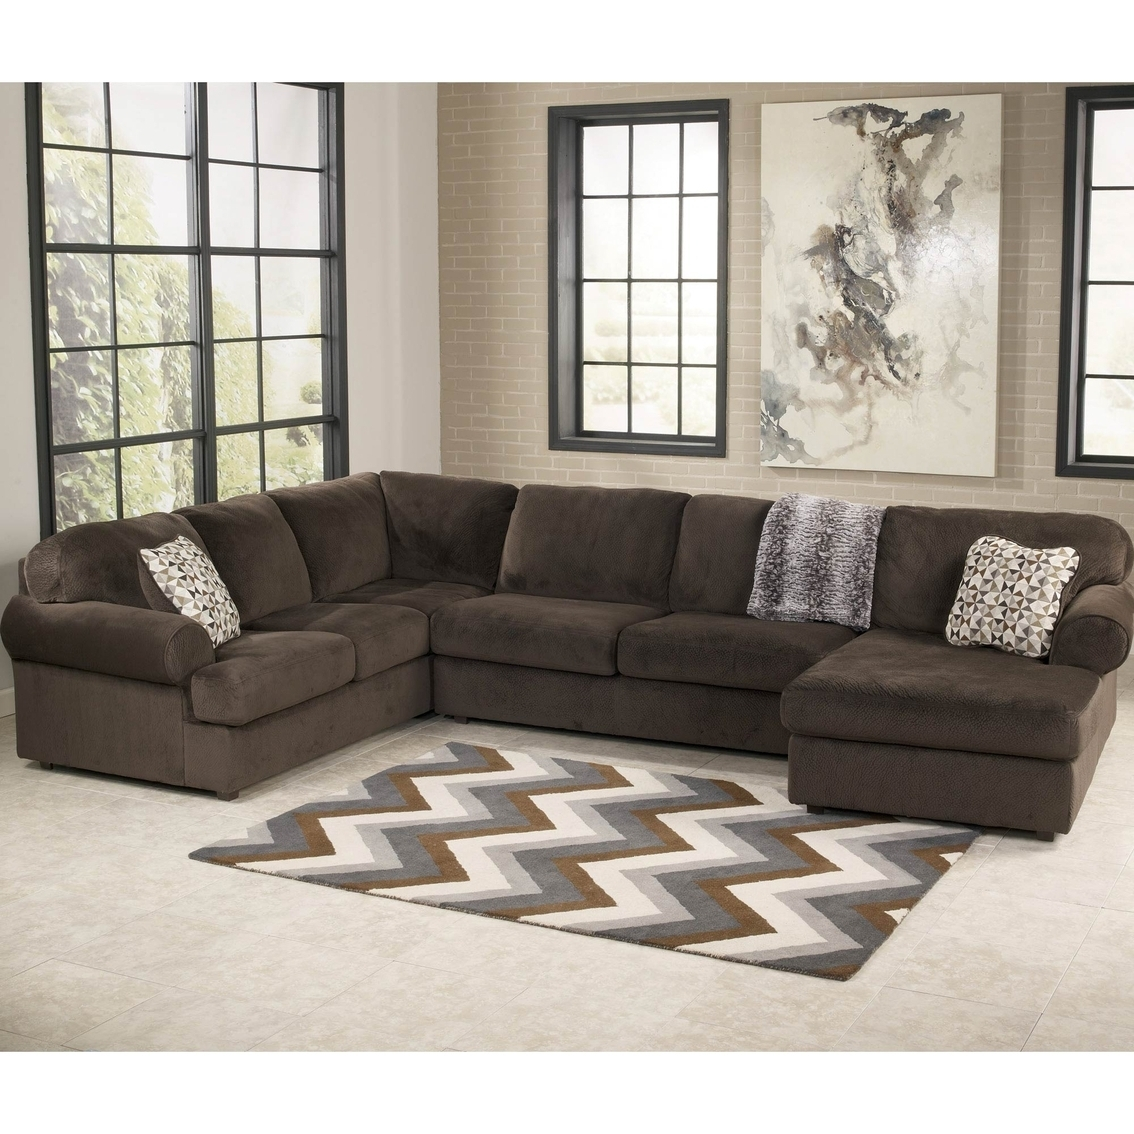 Preferred Brown Sectional Living Room (View 13 of 15)